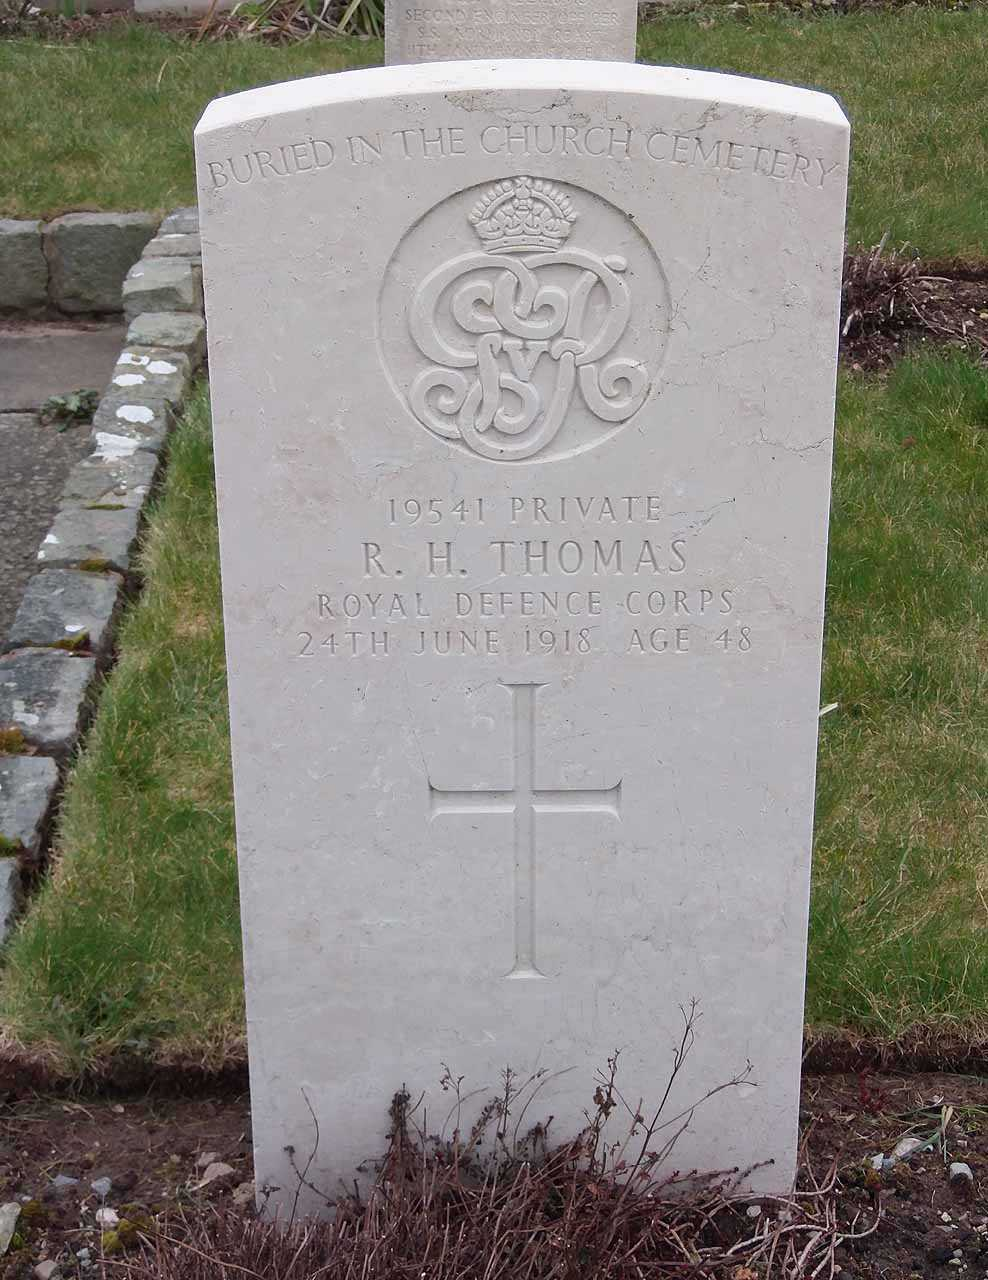 Robert Hush Thomas Royal Defence Corps died in 1918 aged 48